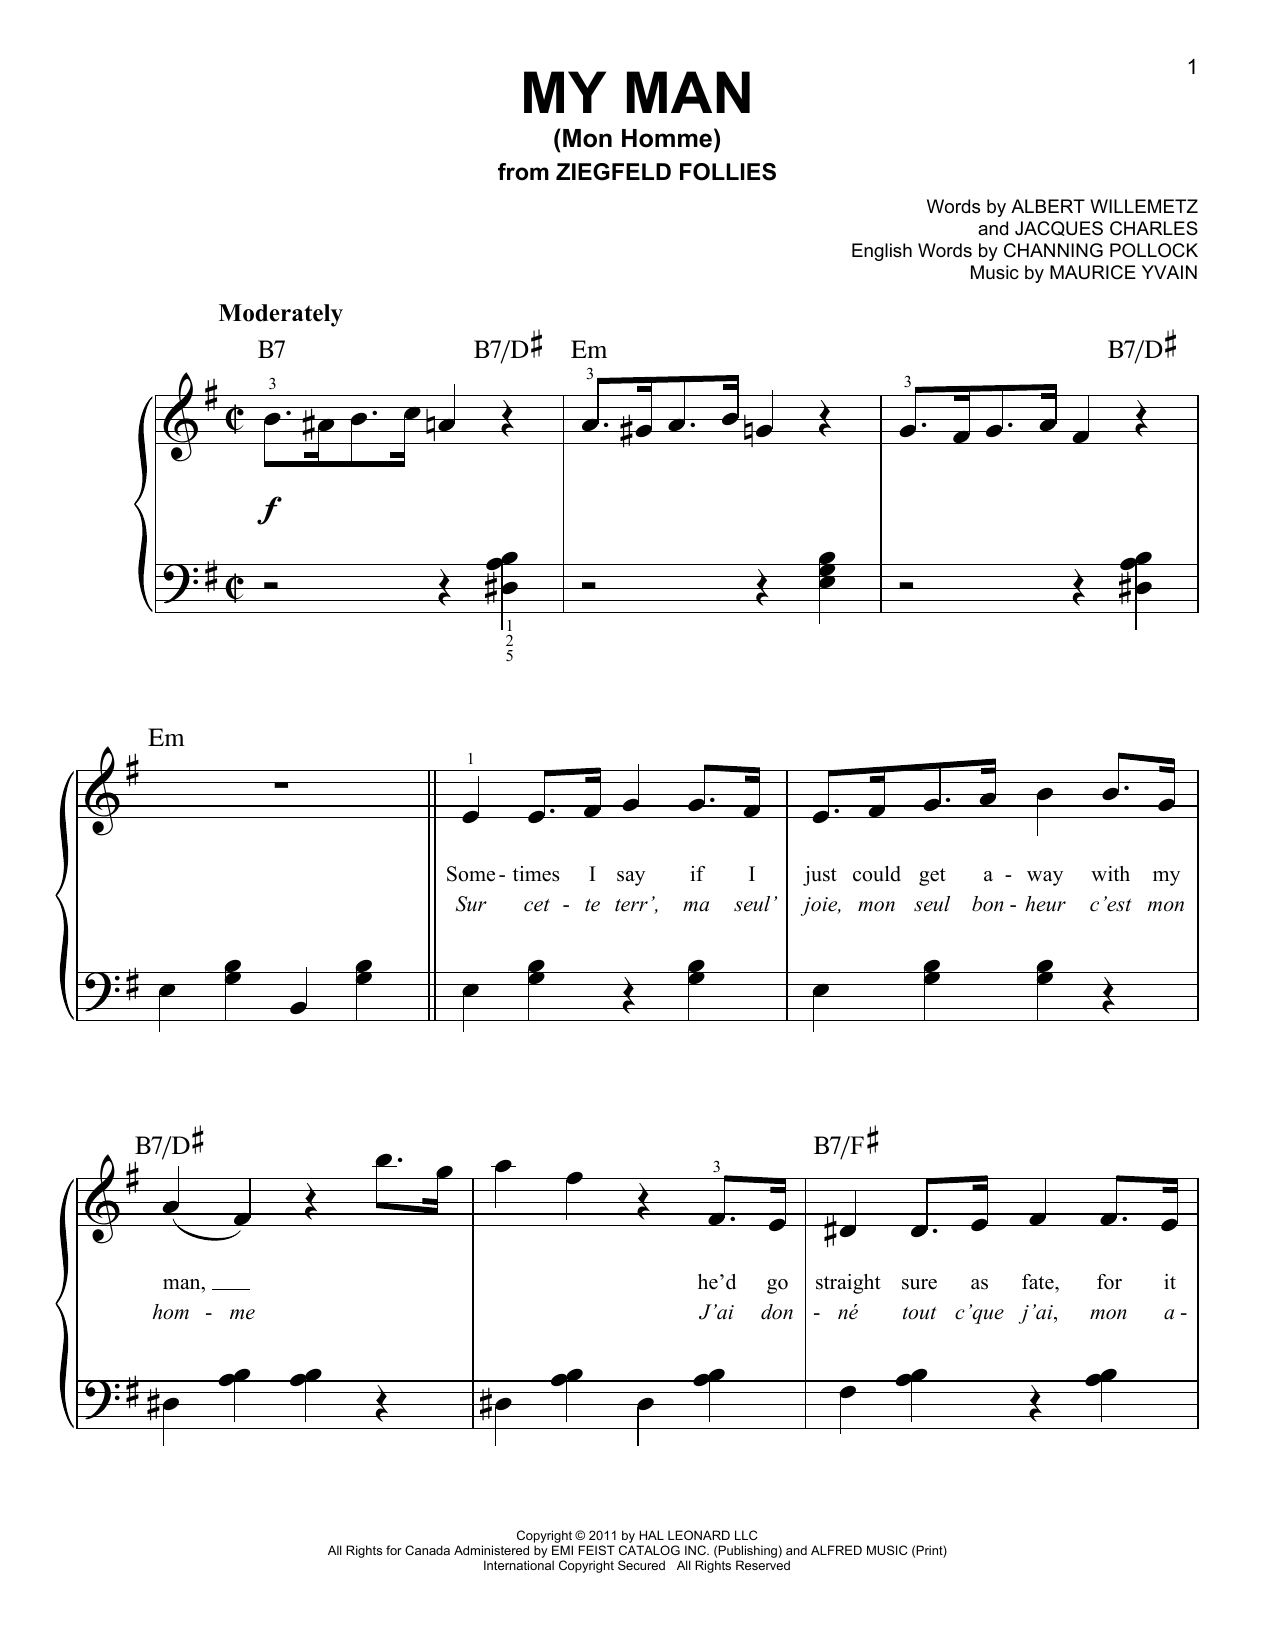 My Man (Mon Homme) Sheet Music